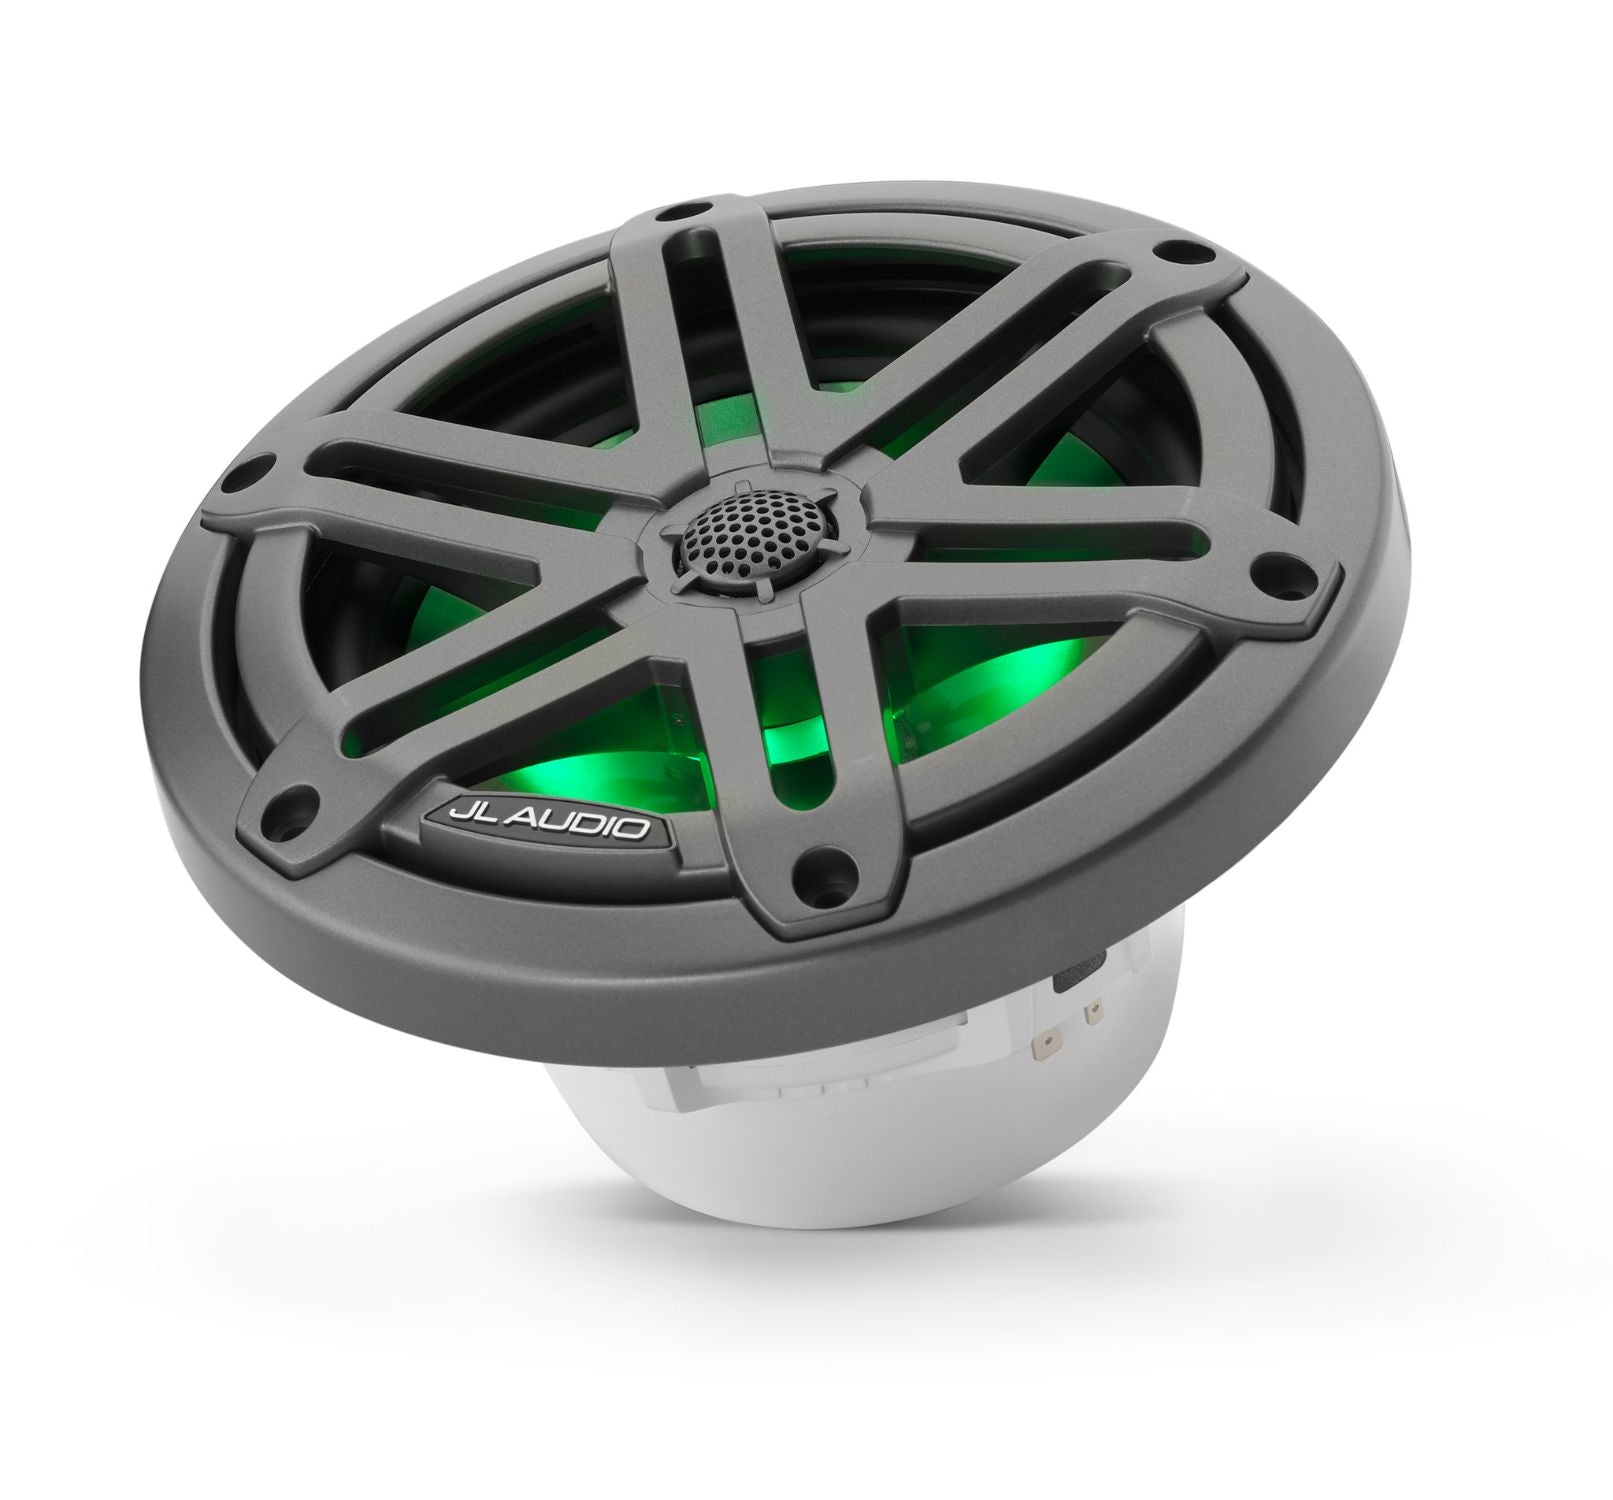 M3-650X-S-Gm-i Coaxial Speaker Tilted Lit with Green